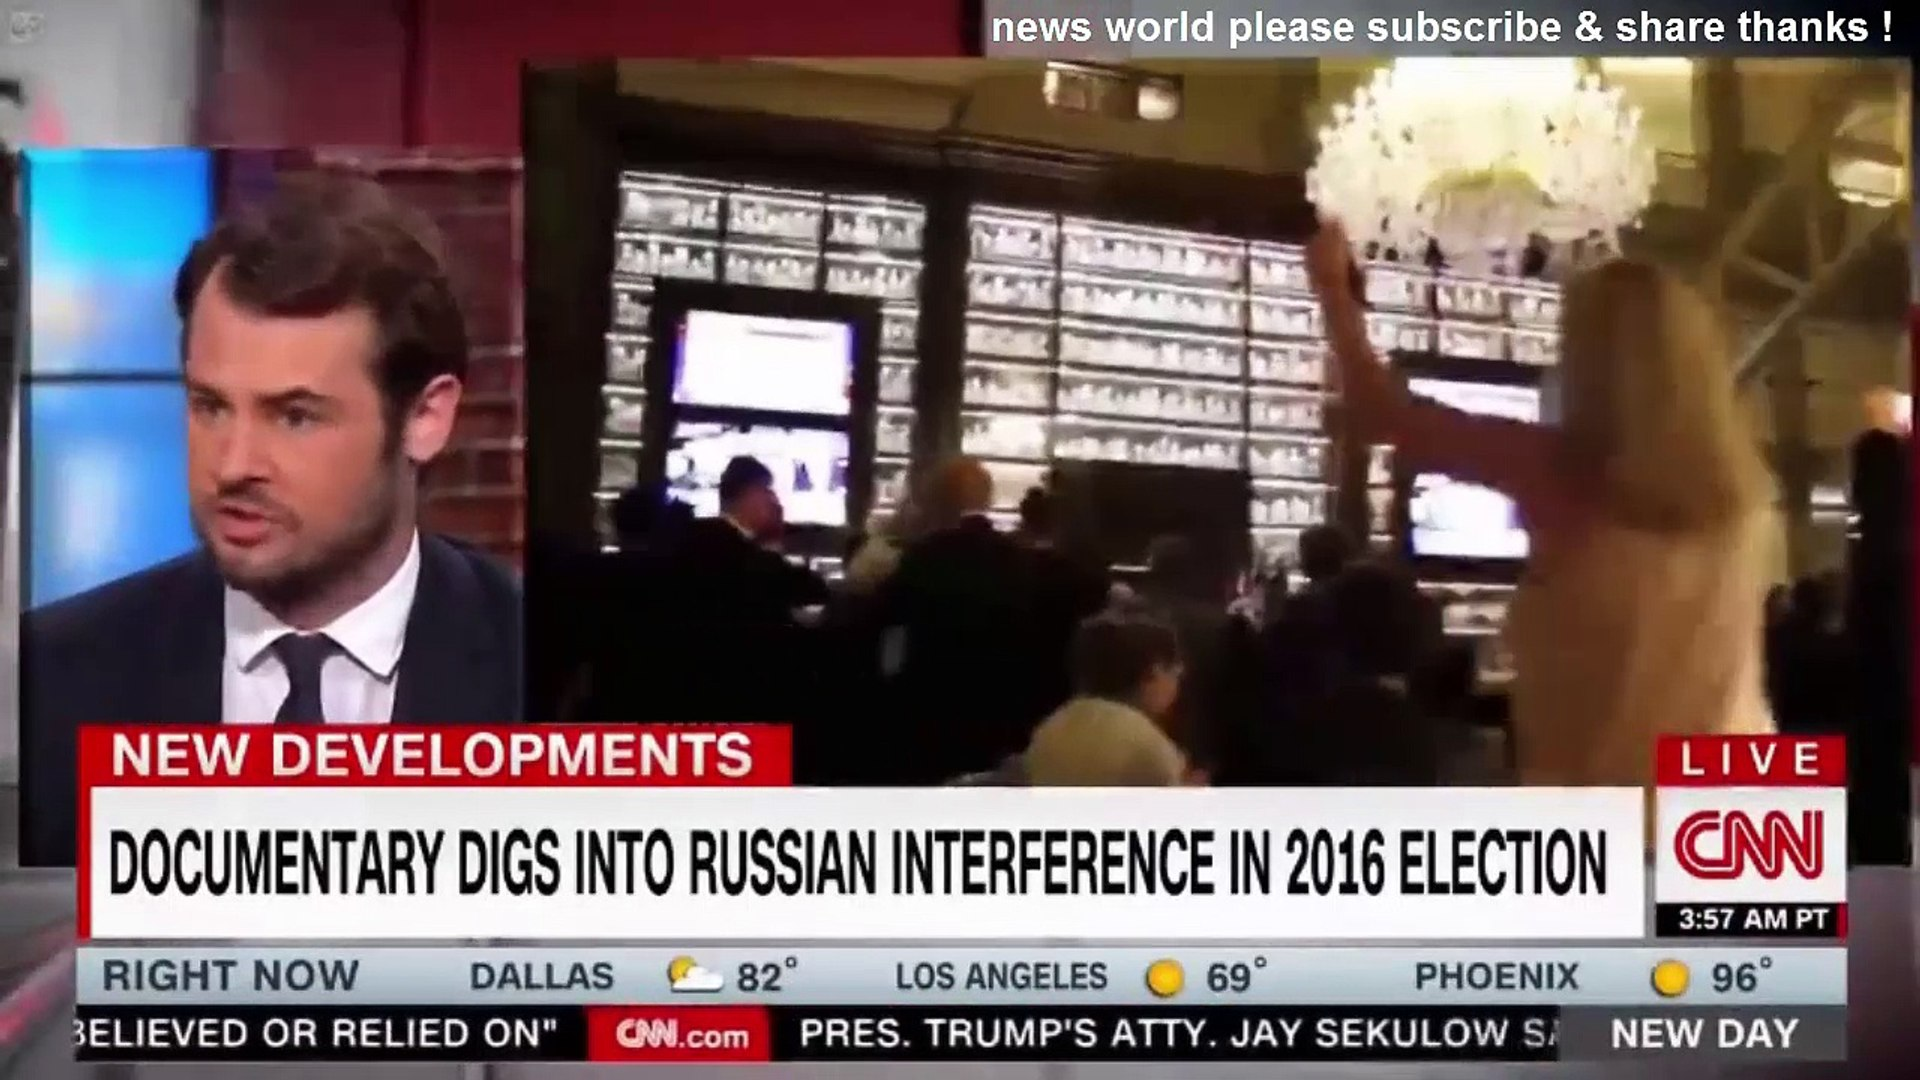 BREAKING NEWS DOCUMENTARY DIGS INTO RUSSIAN INTERFERENCE IN 2016 ELECTION. CNN NEWS